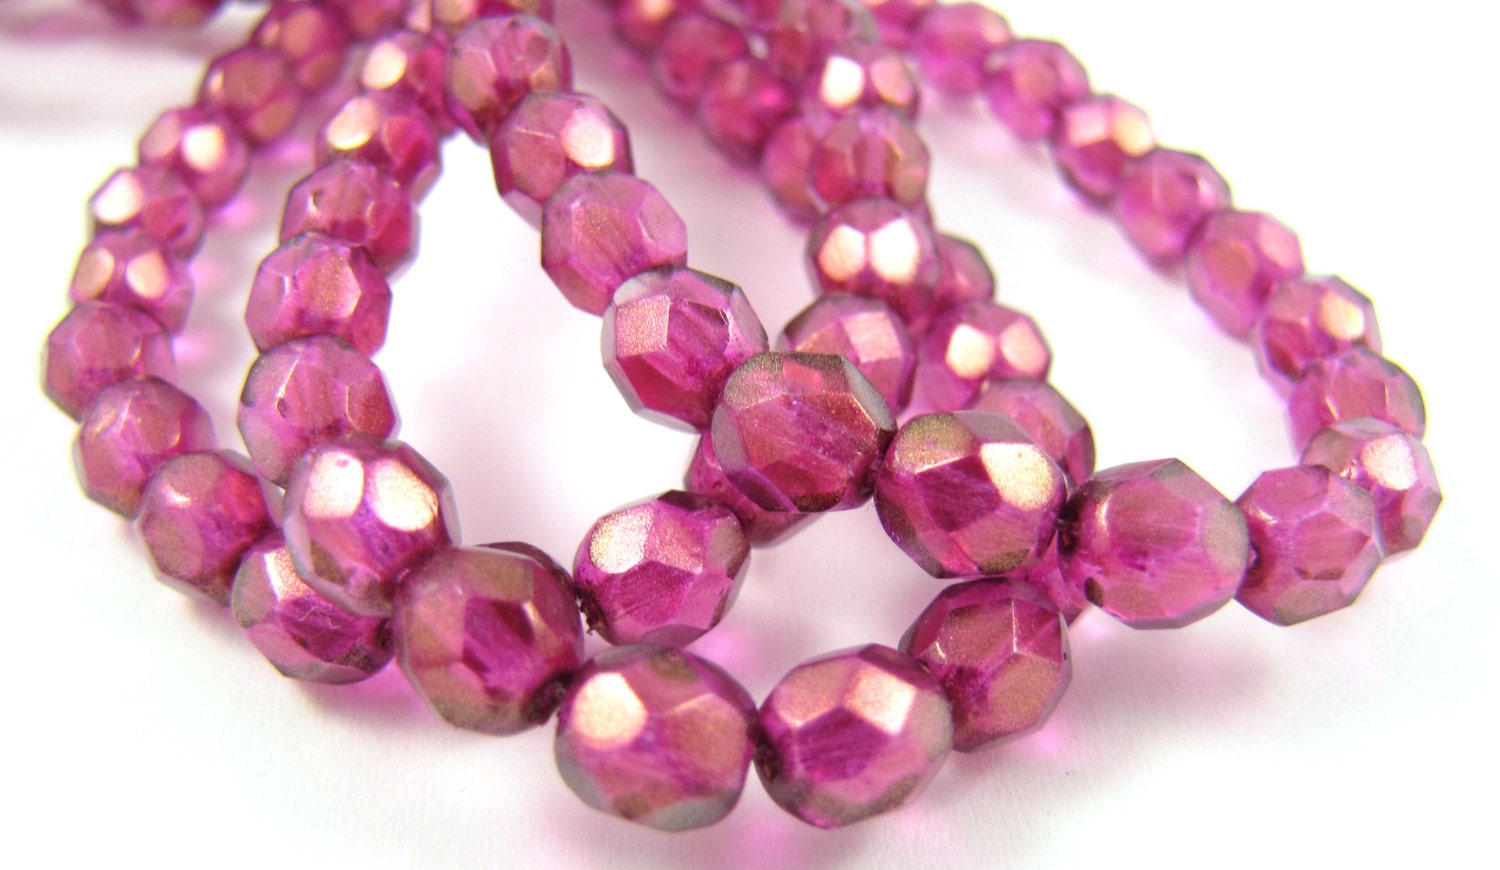 NEW Halo Madder Rose 6mm Facet Round Czech Glass Fire Polished Beads #1790